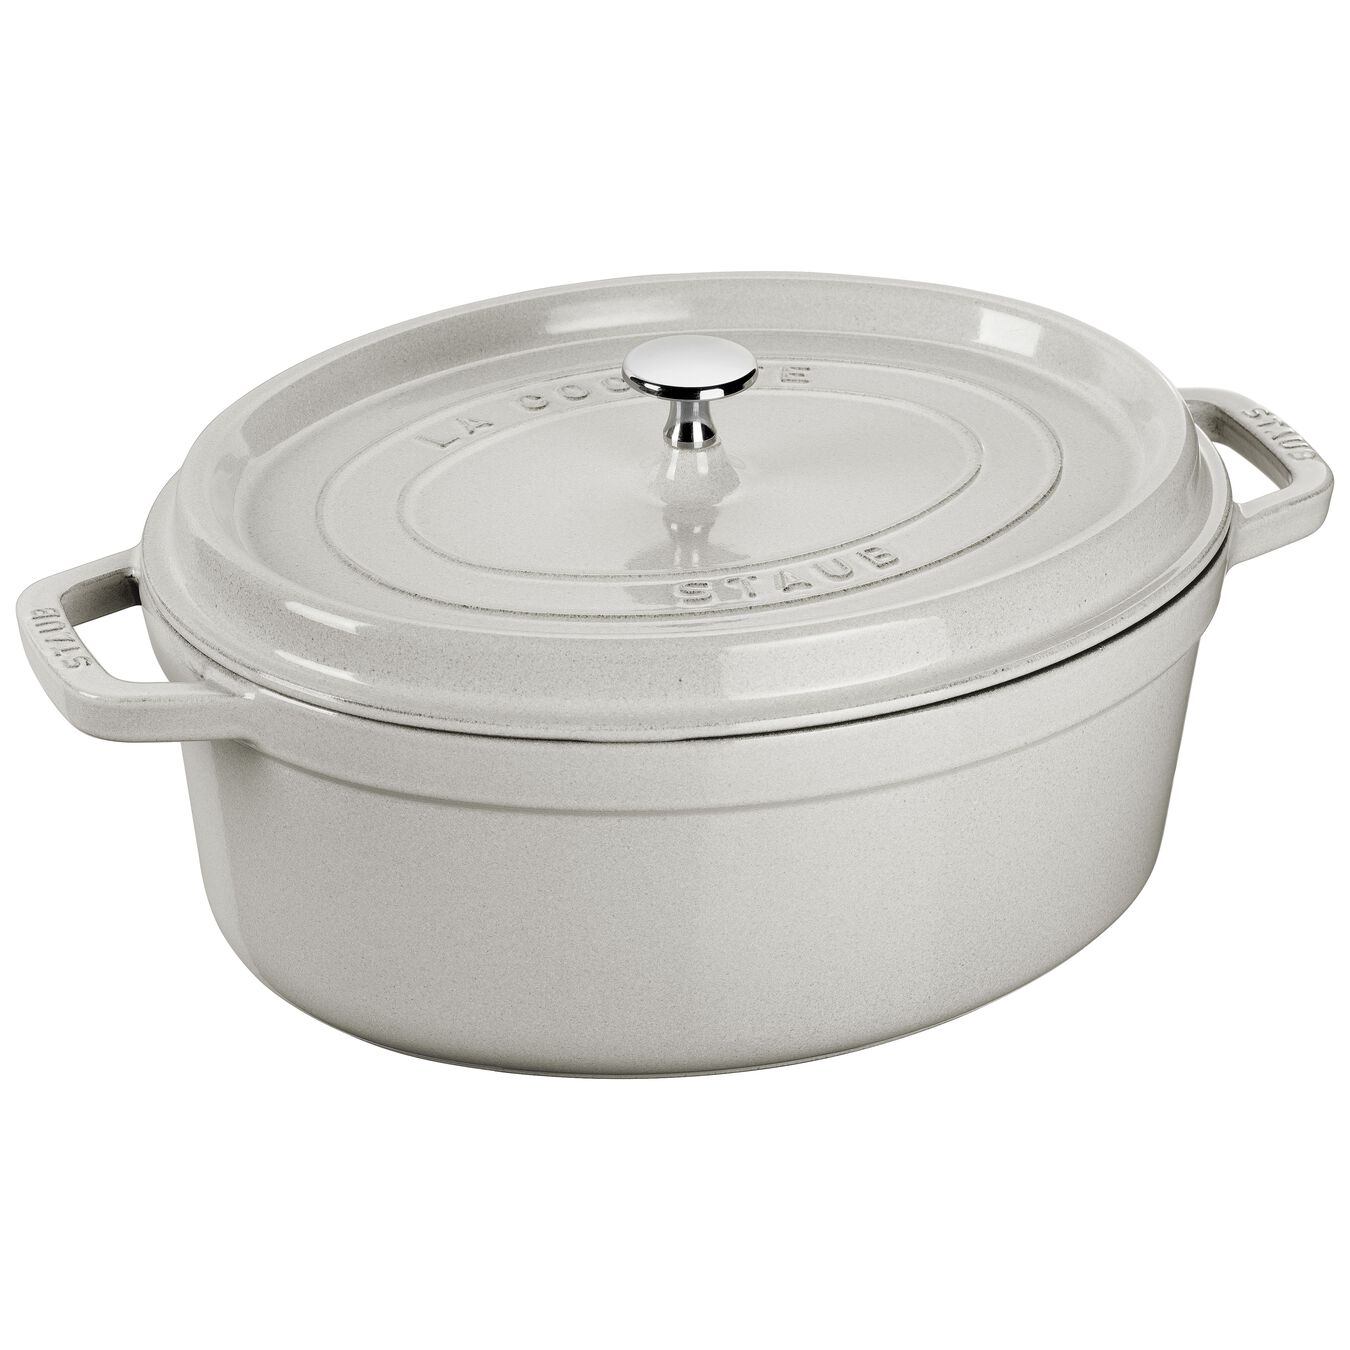 6.75 l oval Cocotte, white truffle,,large 1